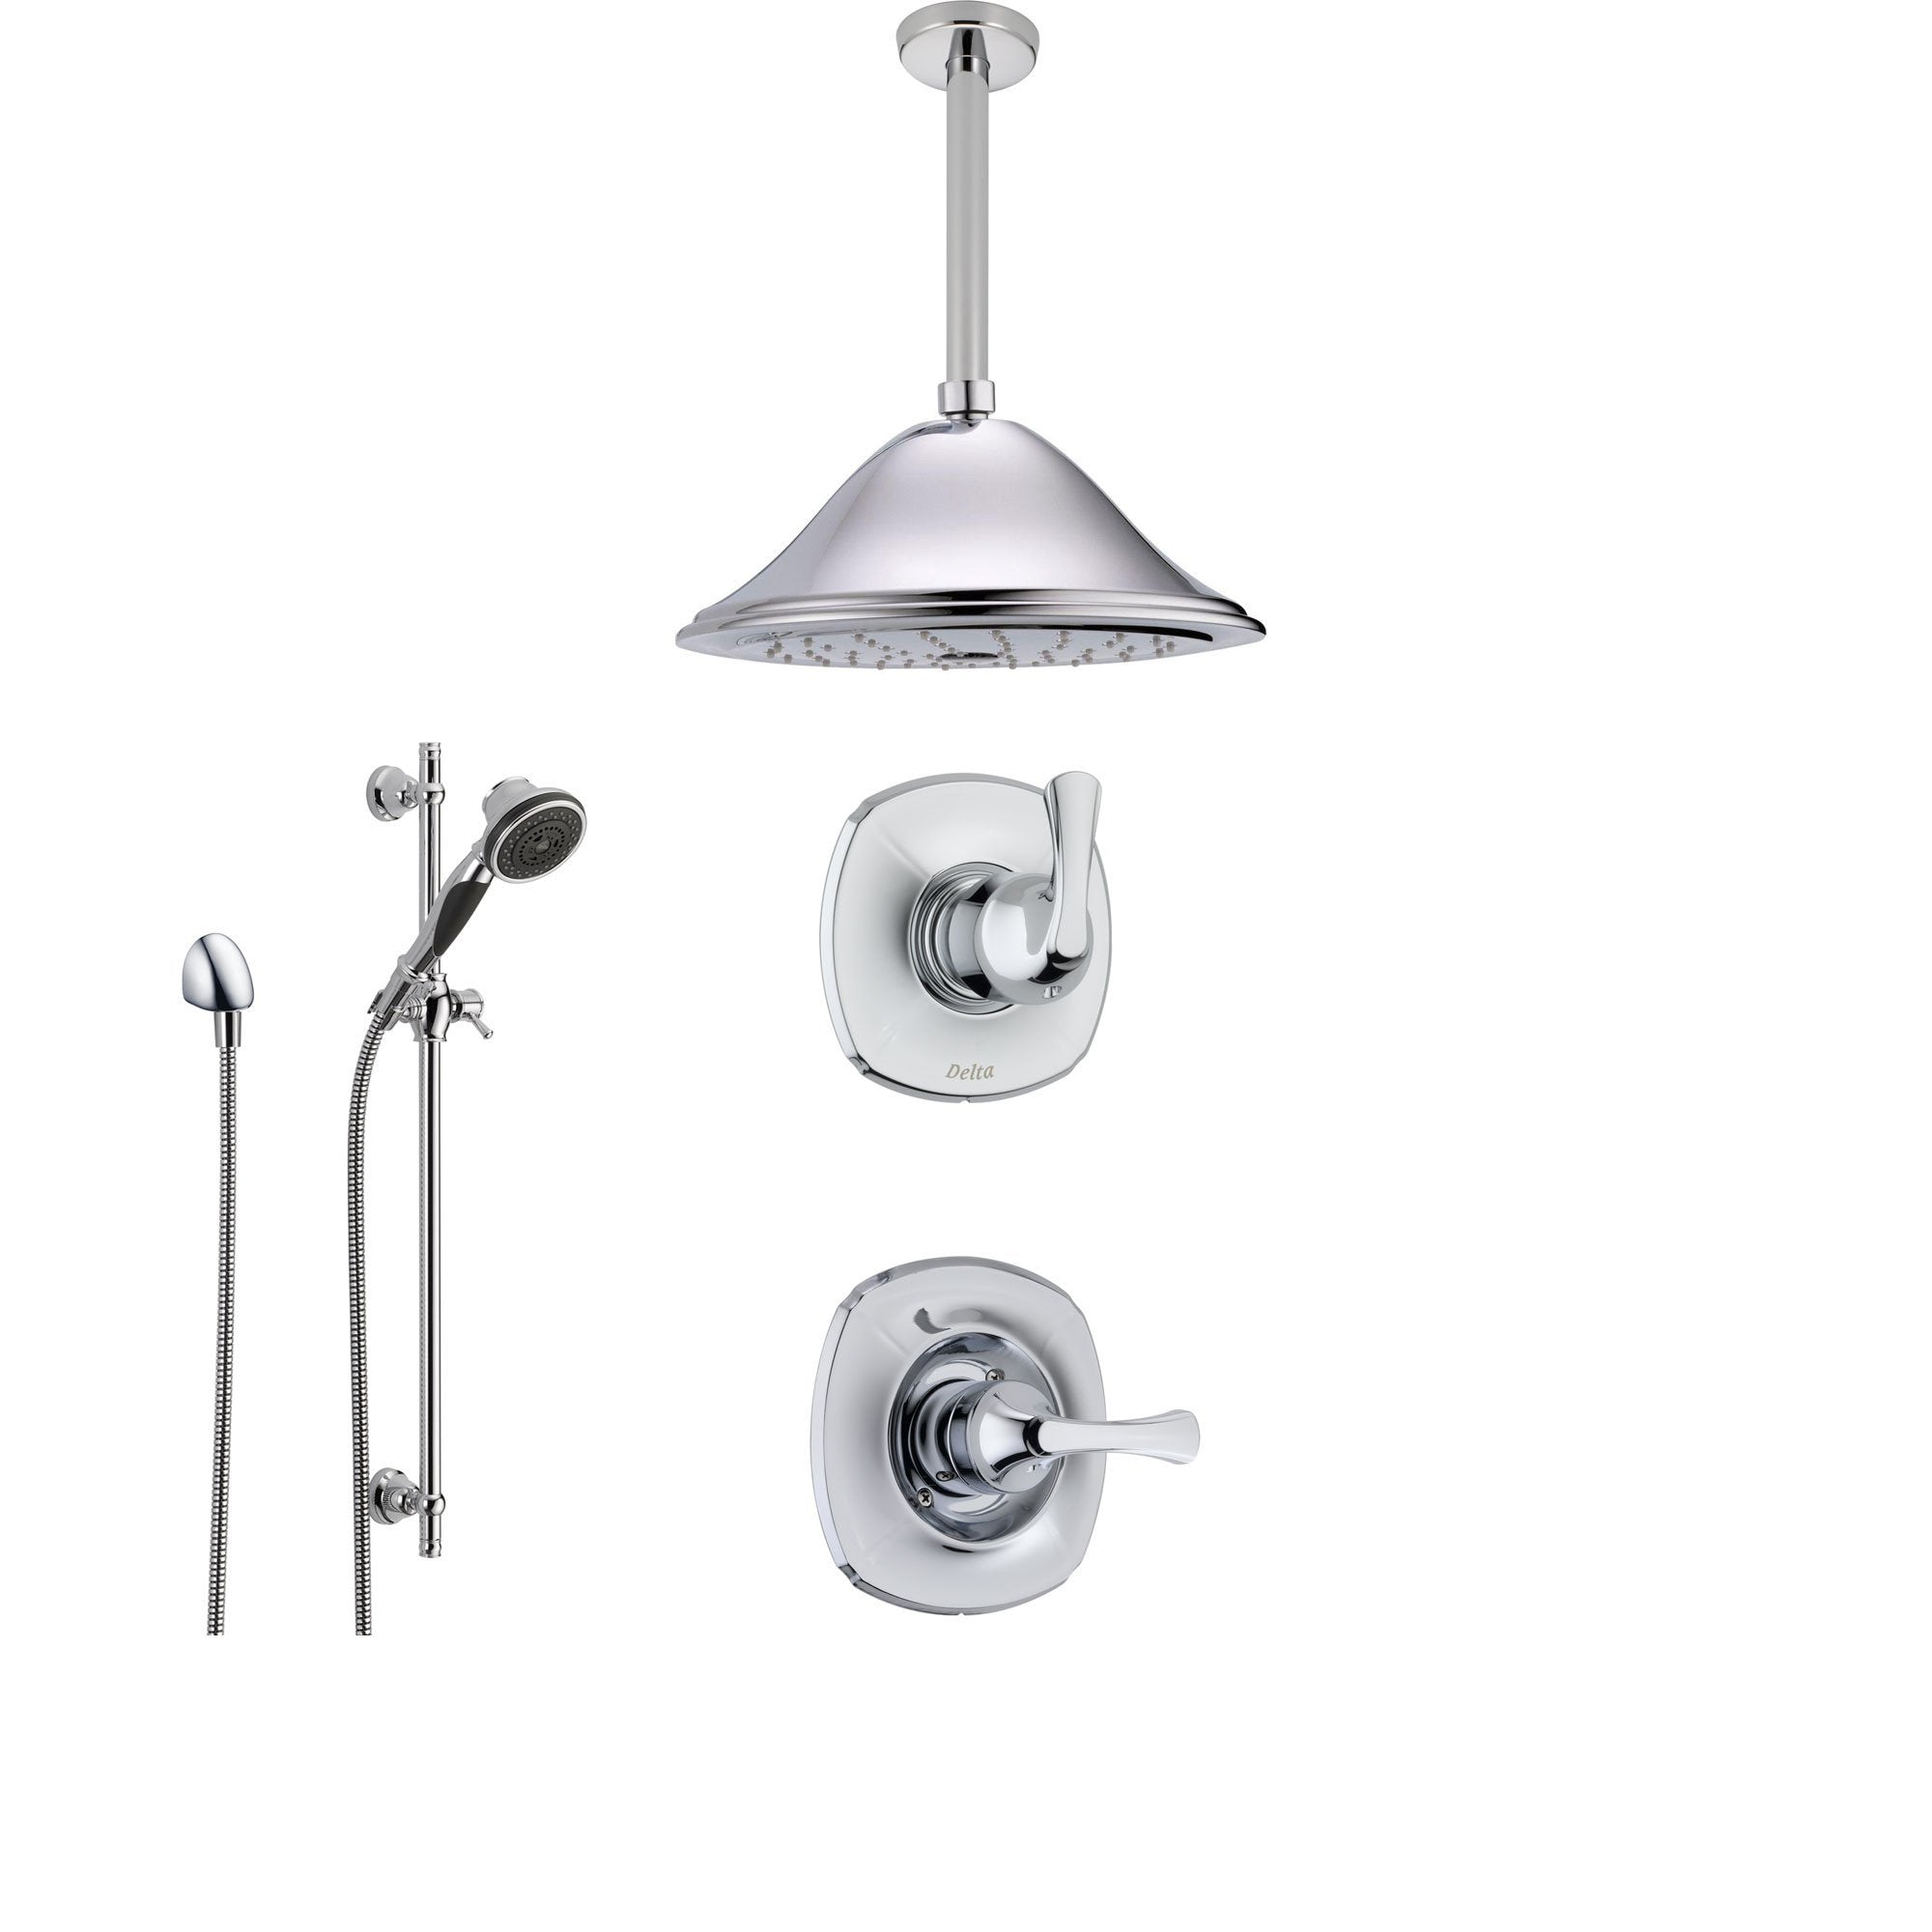 Delta Addison Chrome Shower System with Normal Shower Handle, 3-setting Diverter, Large Ceiling Mount Showerhead, and Handheld Shower SS149282